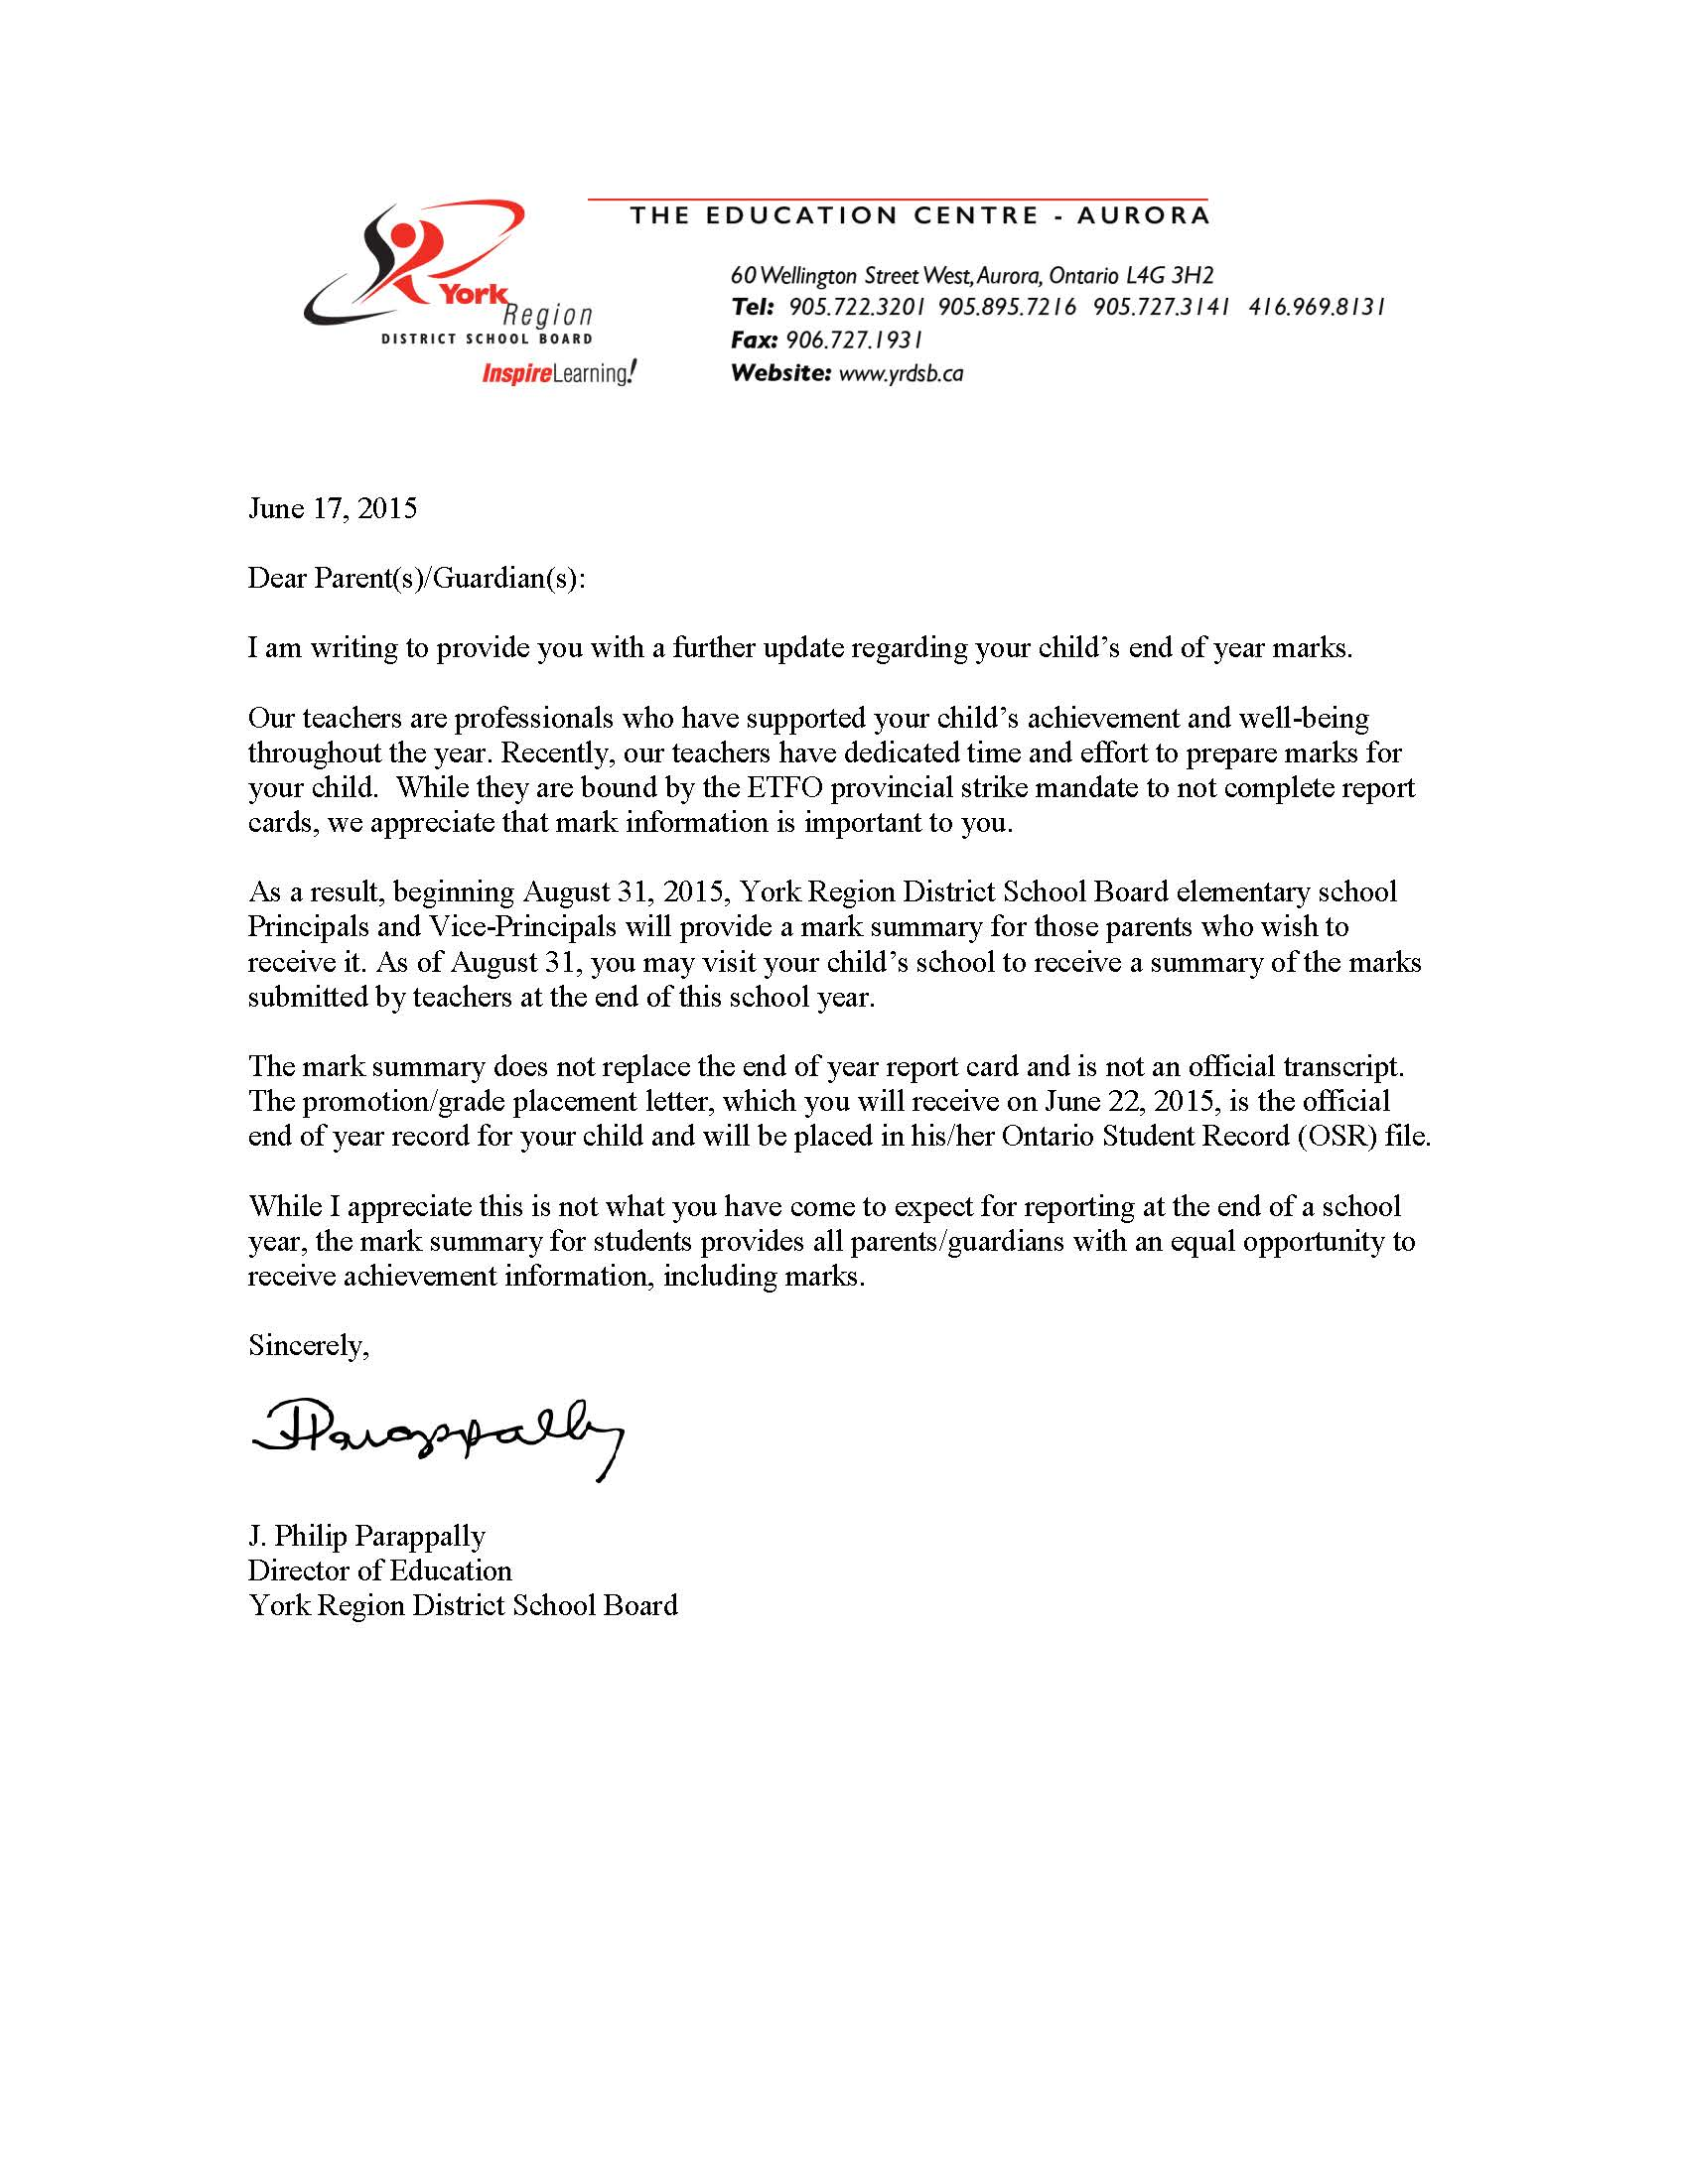 yrdsb promotion  grade placement letter  u0026 mark summary